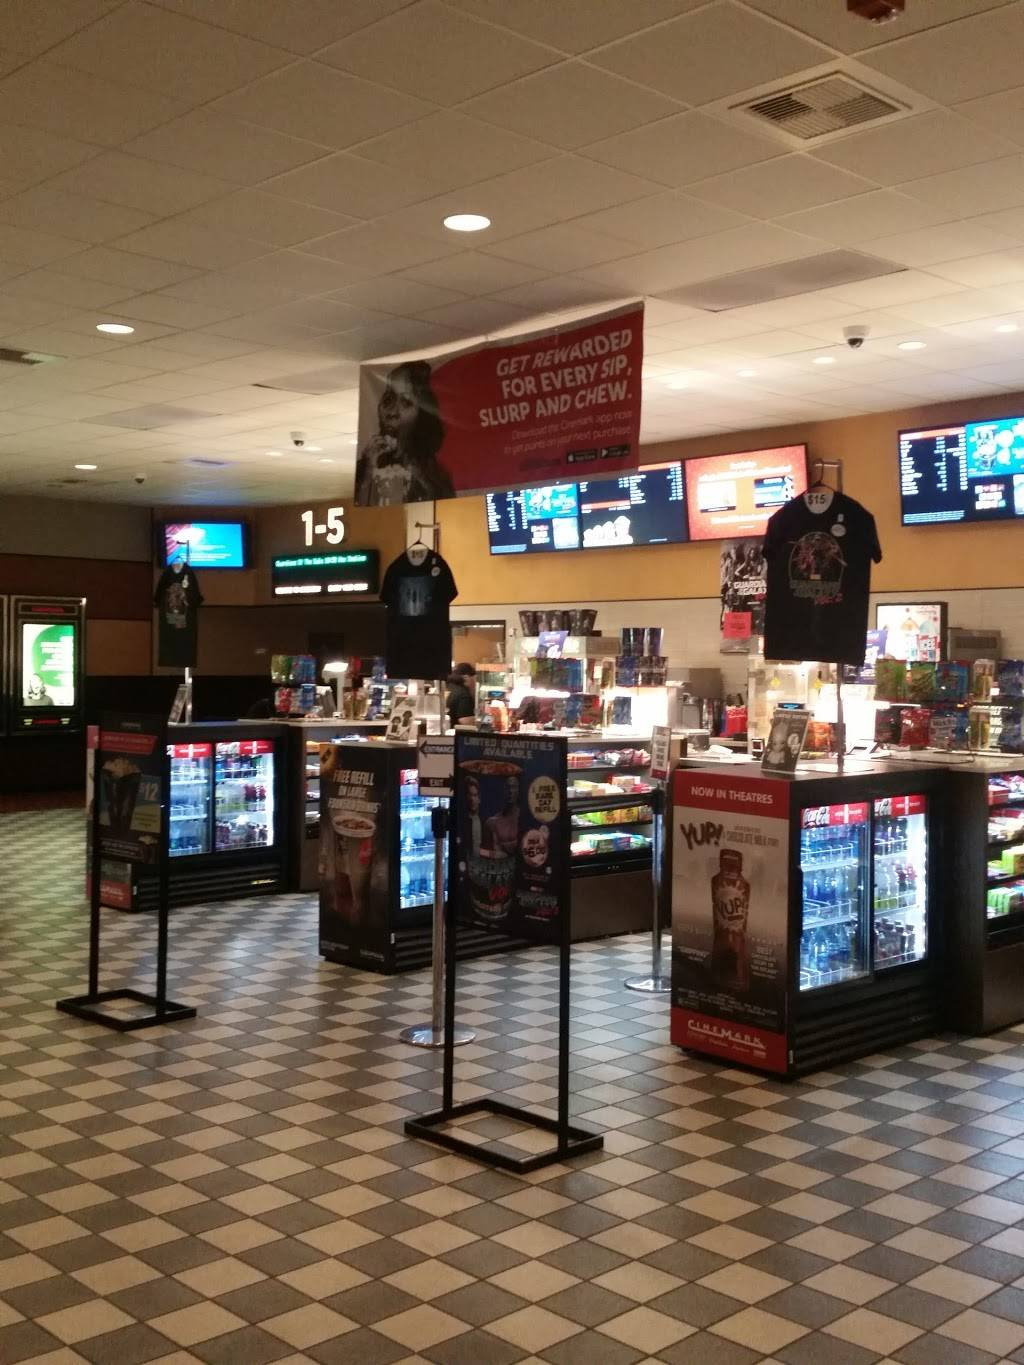 Cinemark Movies 10 | meal takeaway | 400 Winchester Ave, Ashland, KY 41101, USA | 6063243128 OR +1 606-324-3128